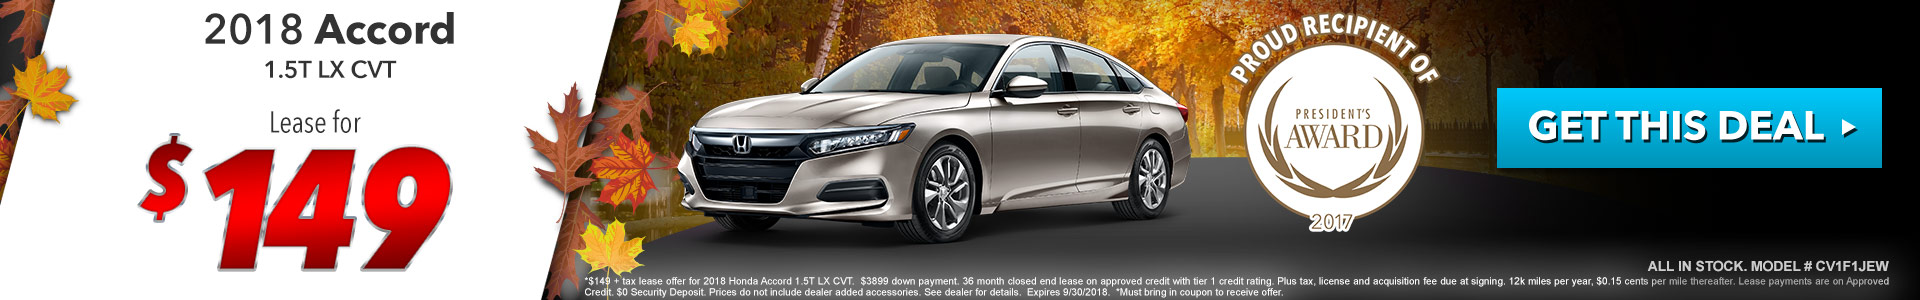 Honda Accord $149 Lease